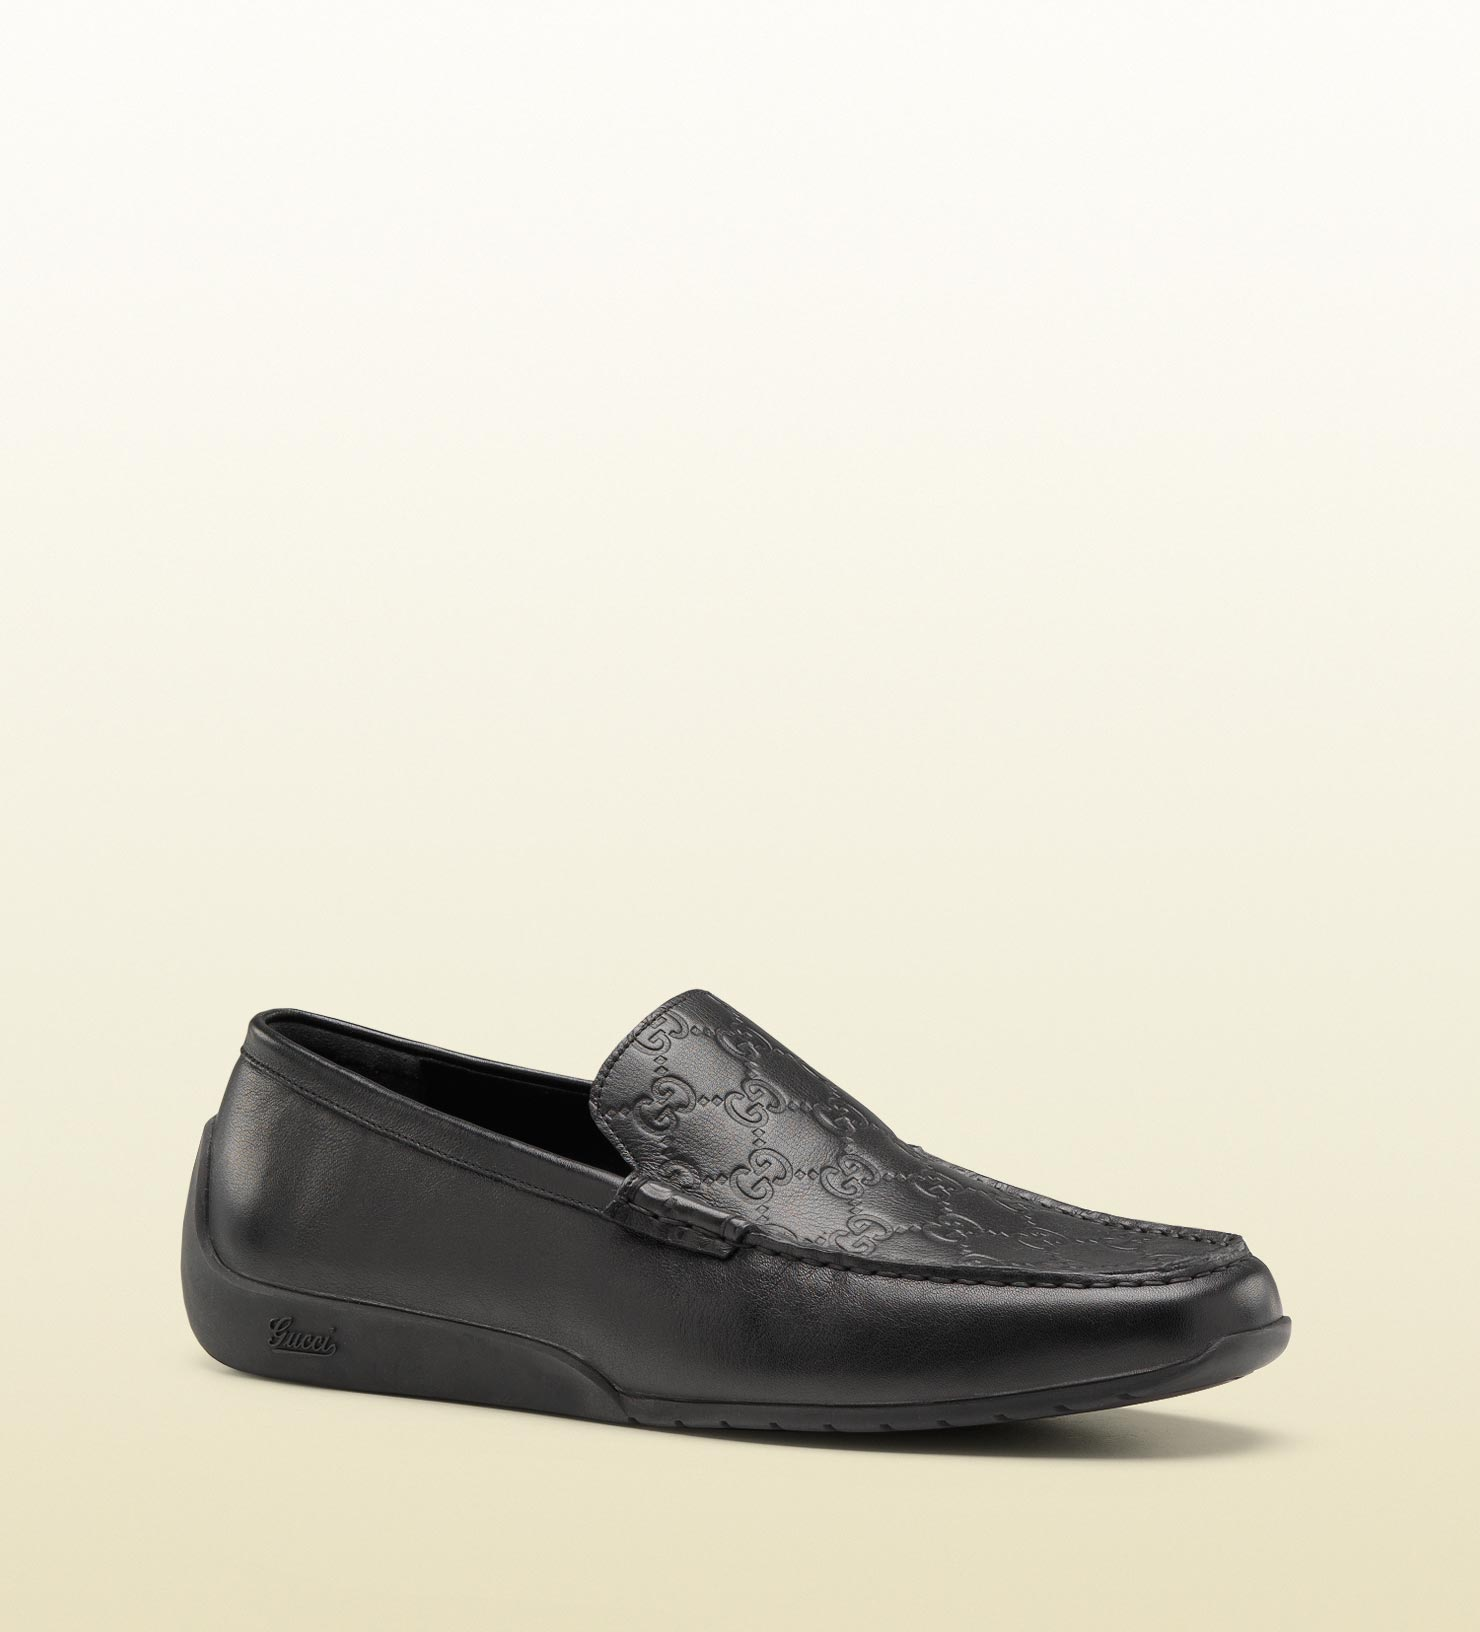 f44a4f6952d Lyst - Gucci Moccasin in Black for Men